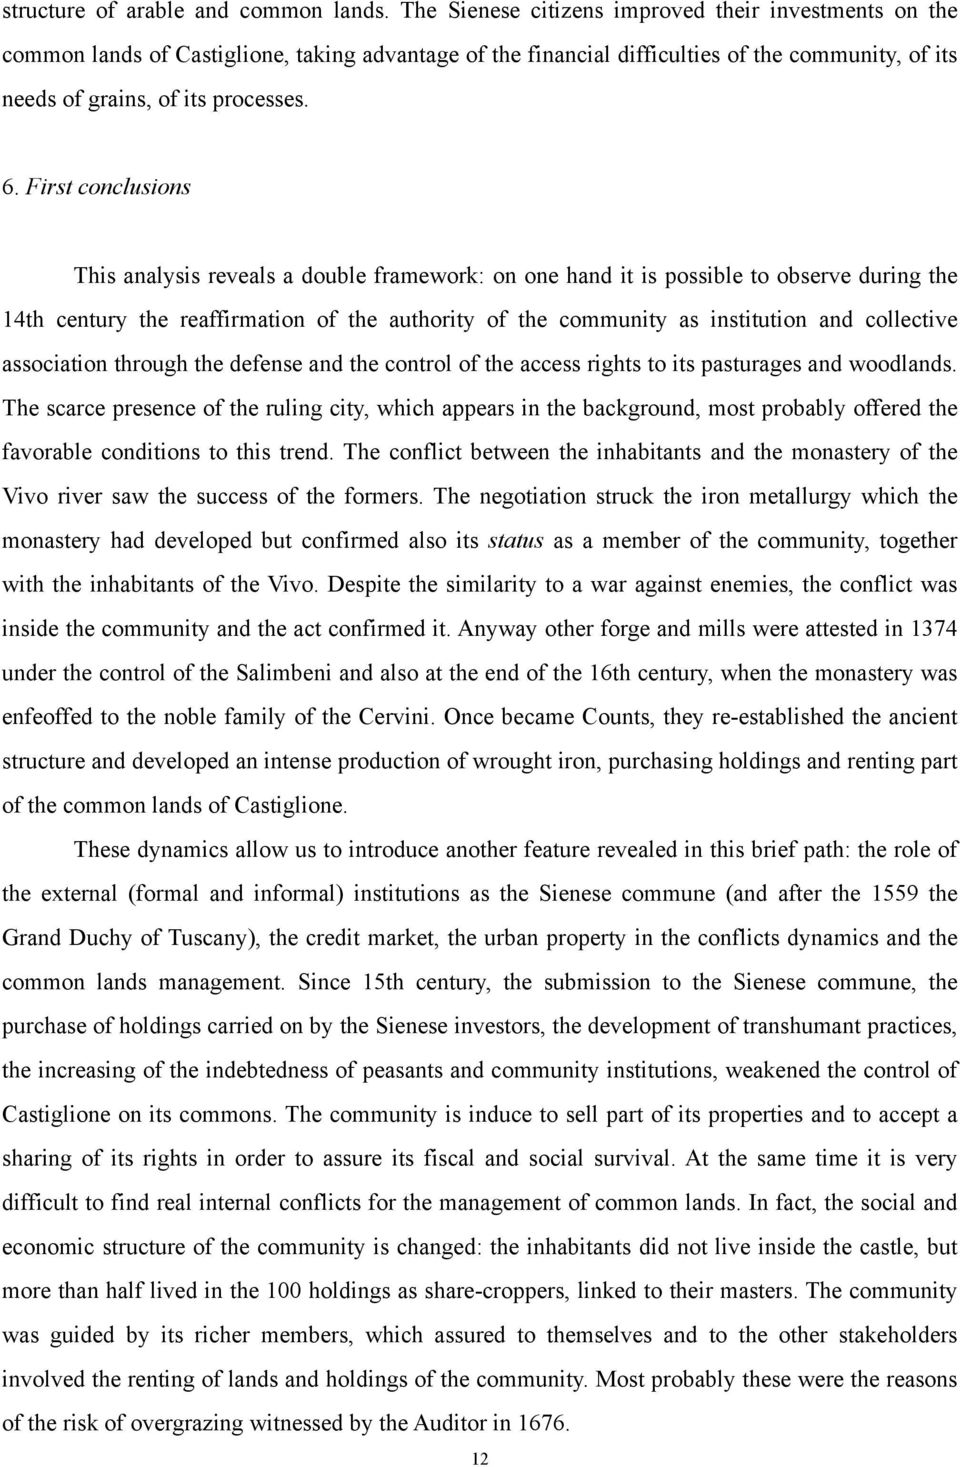 First conclusions This analysis reveals a double framework: on one hand it is possible to observe during the 14th century the reaffirmation of the authority of the community as institution and